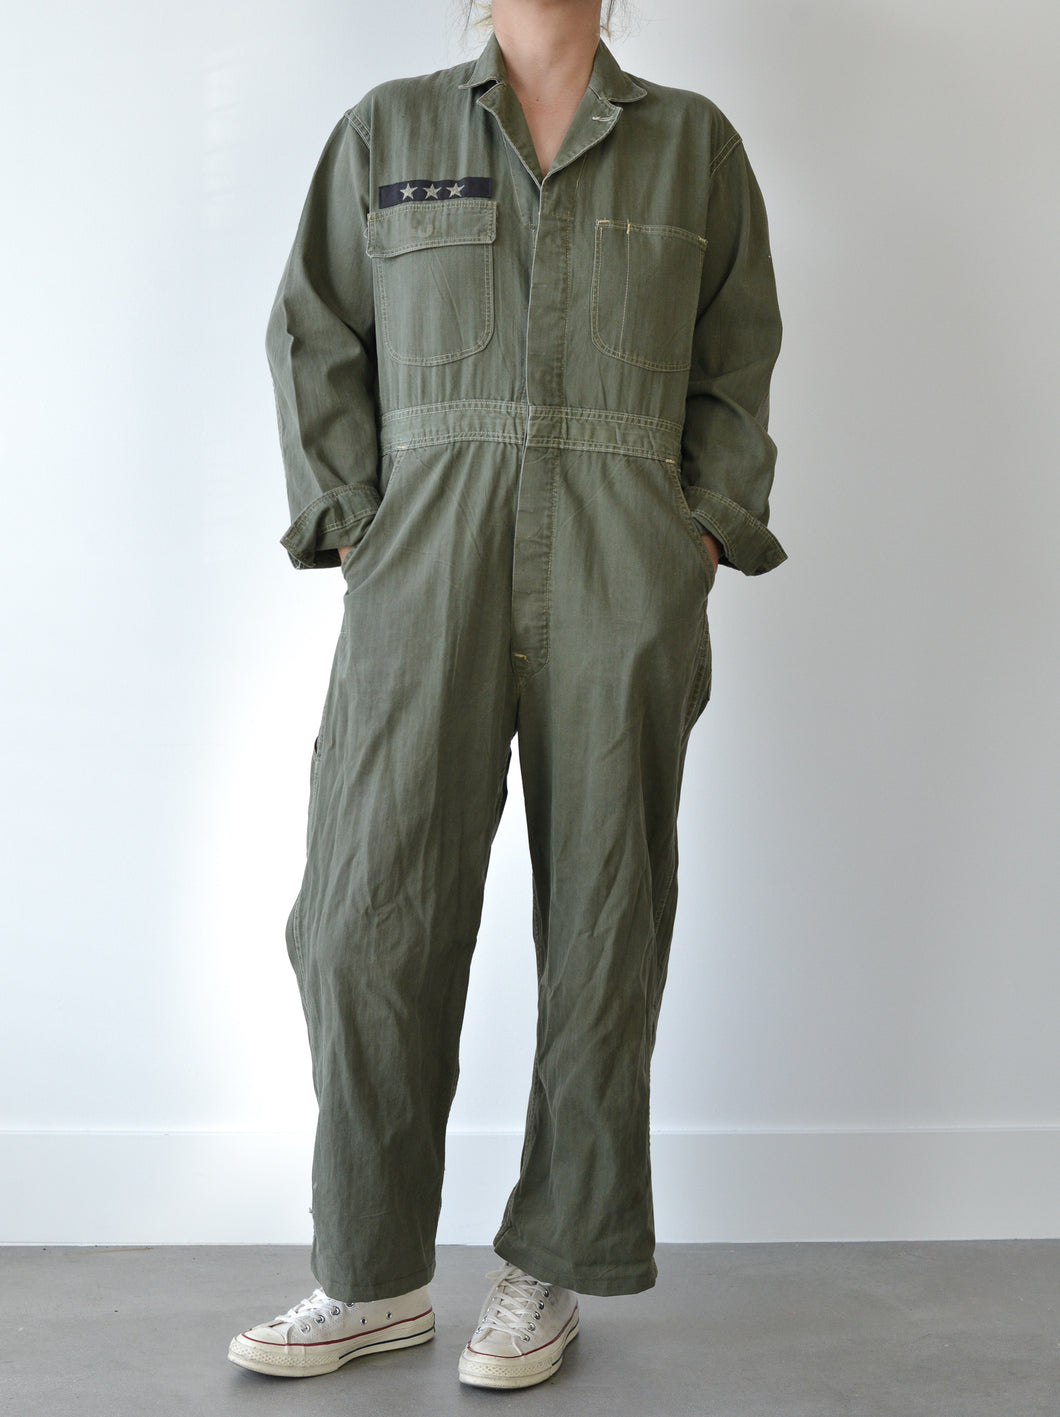 VINTAGE MILITARY JUMPSUIT - PSYCHEDELIC EMBROIDERY